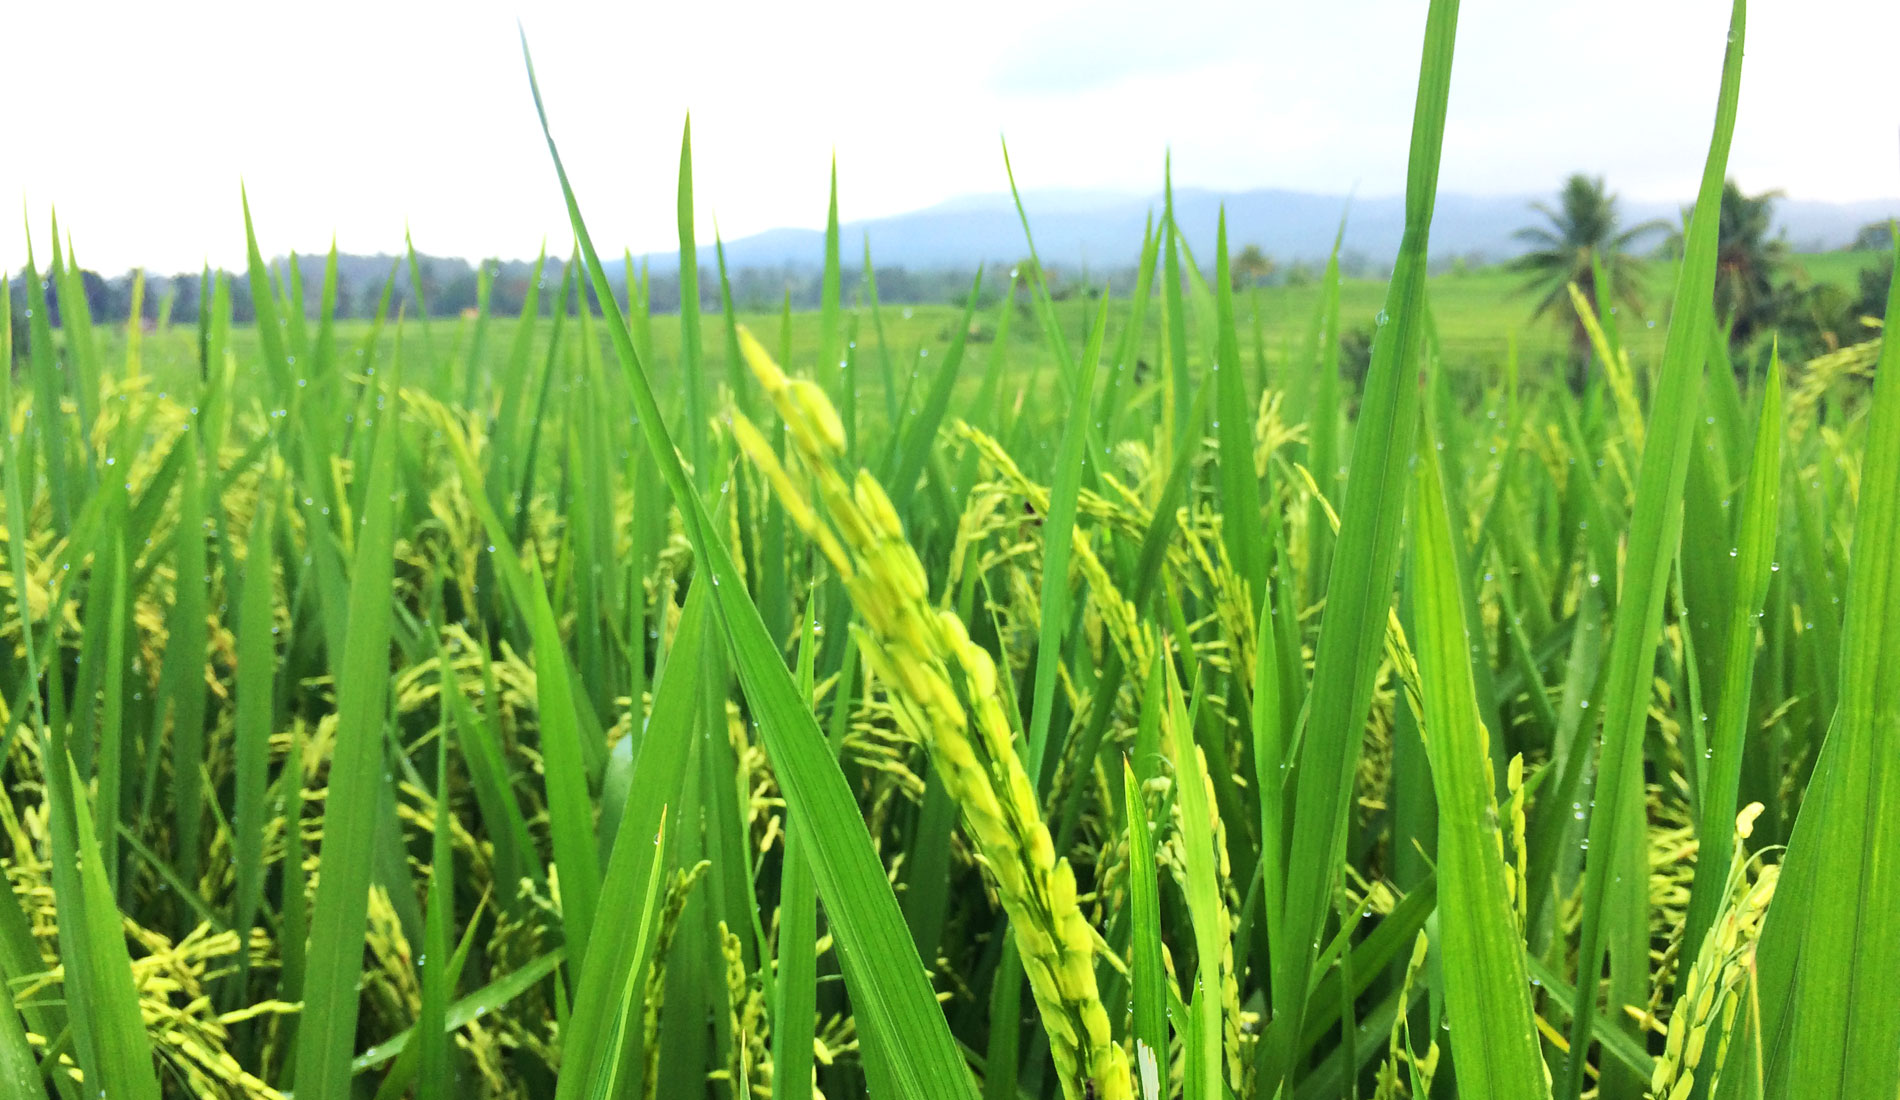 Bali Rice Field - Things To Do in Bali Tours Activities